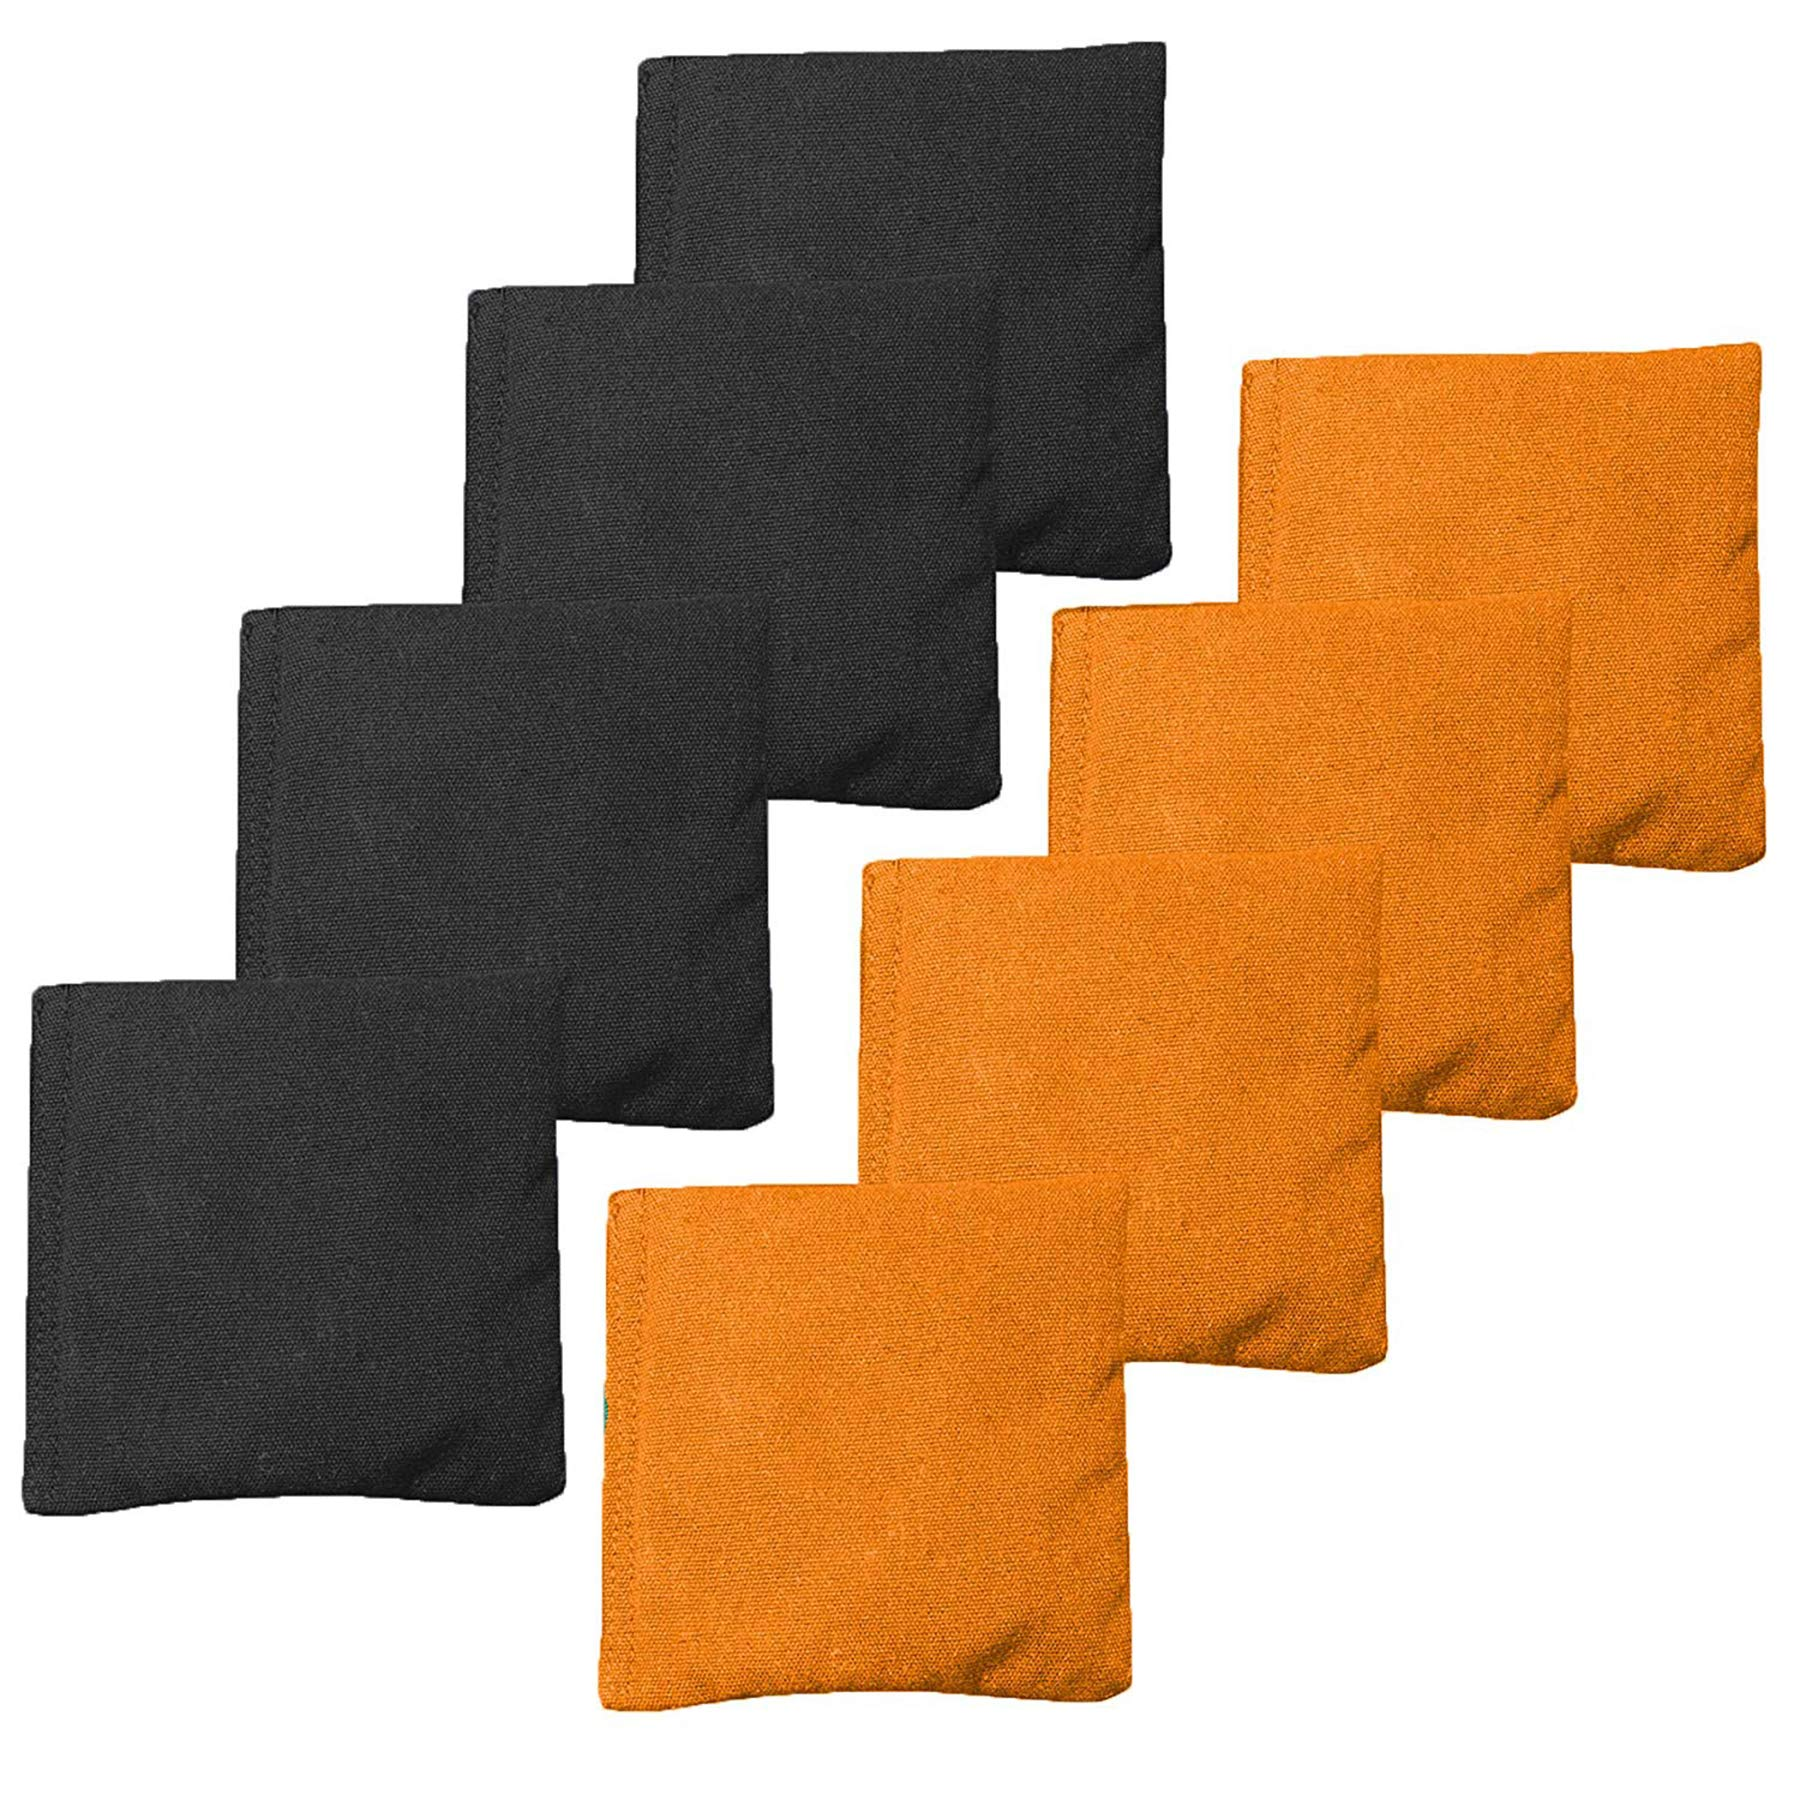 Premium Weather Resistant Duckcloth Cornhole Bags - Set of 8 Halloween Bean Bags for Corn Hole Game - Regulation Size & Weight - 4 Orange & 4 Black by Play Platoon